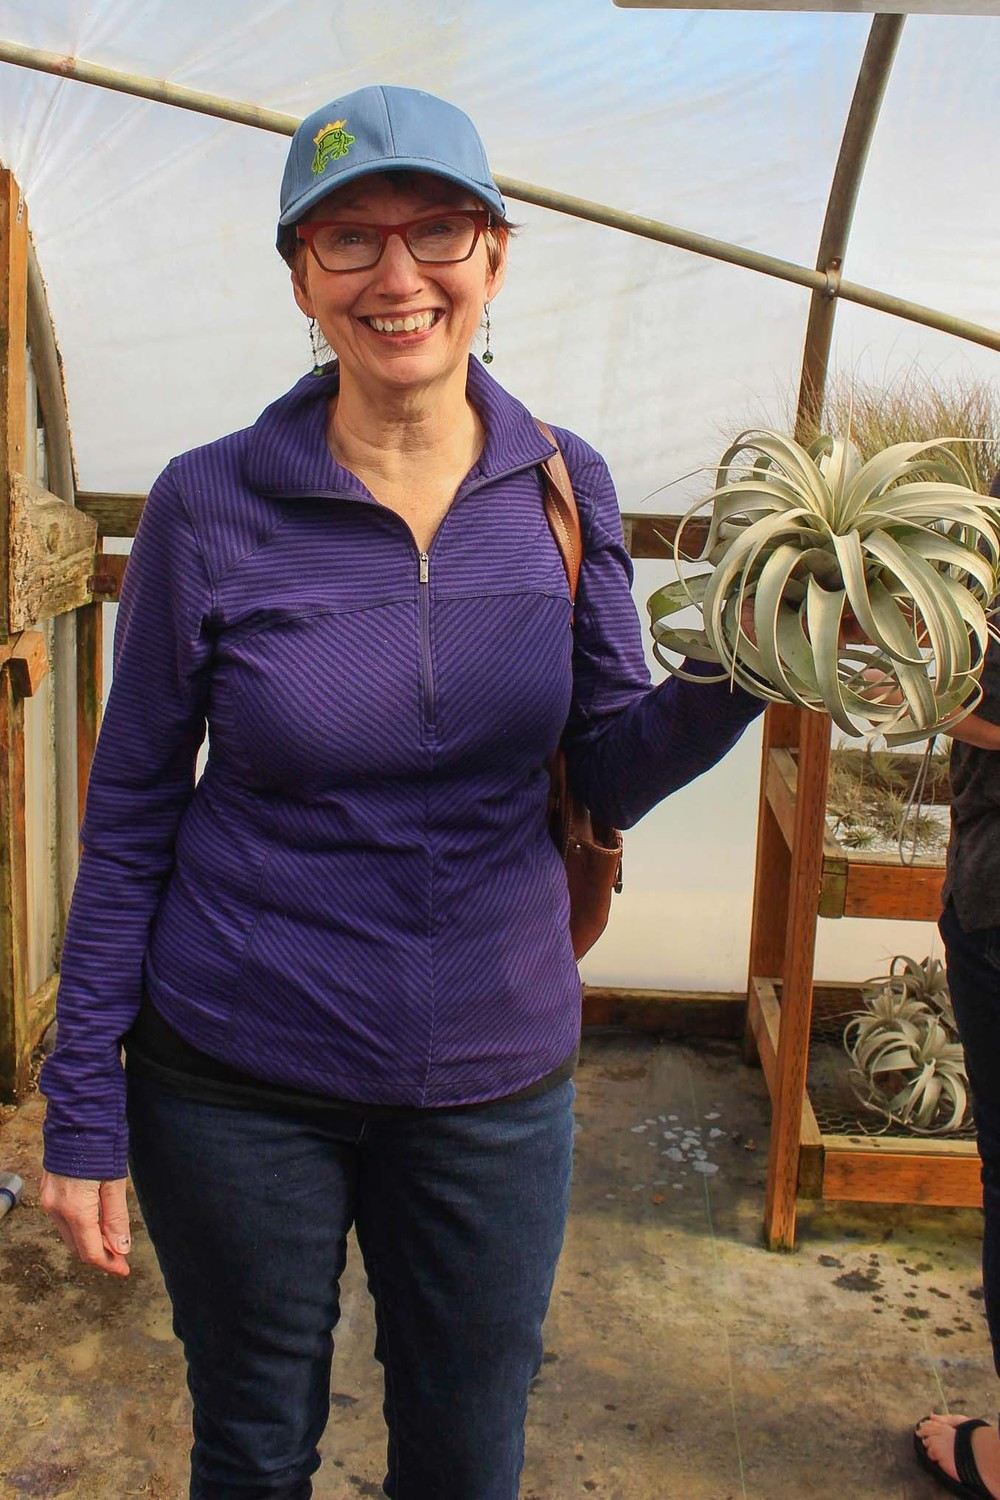 Patricia rocking her new Little Prince Nursery cap and Tillandsia xerographica!